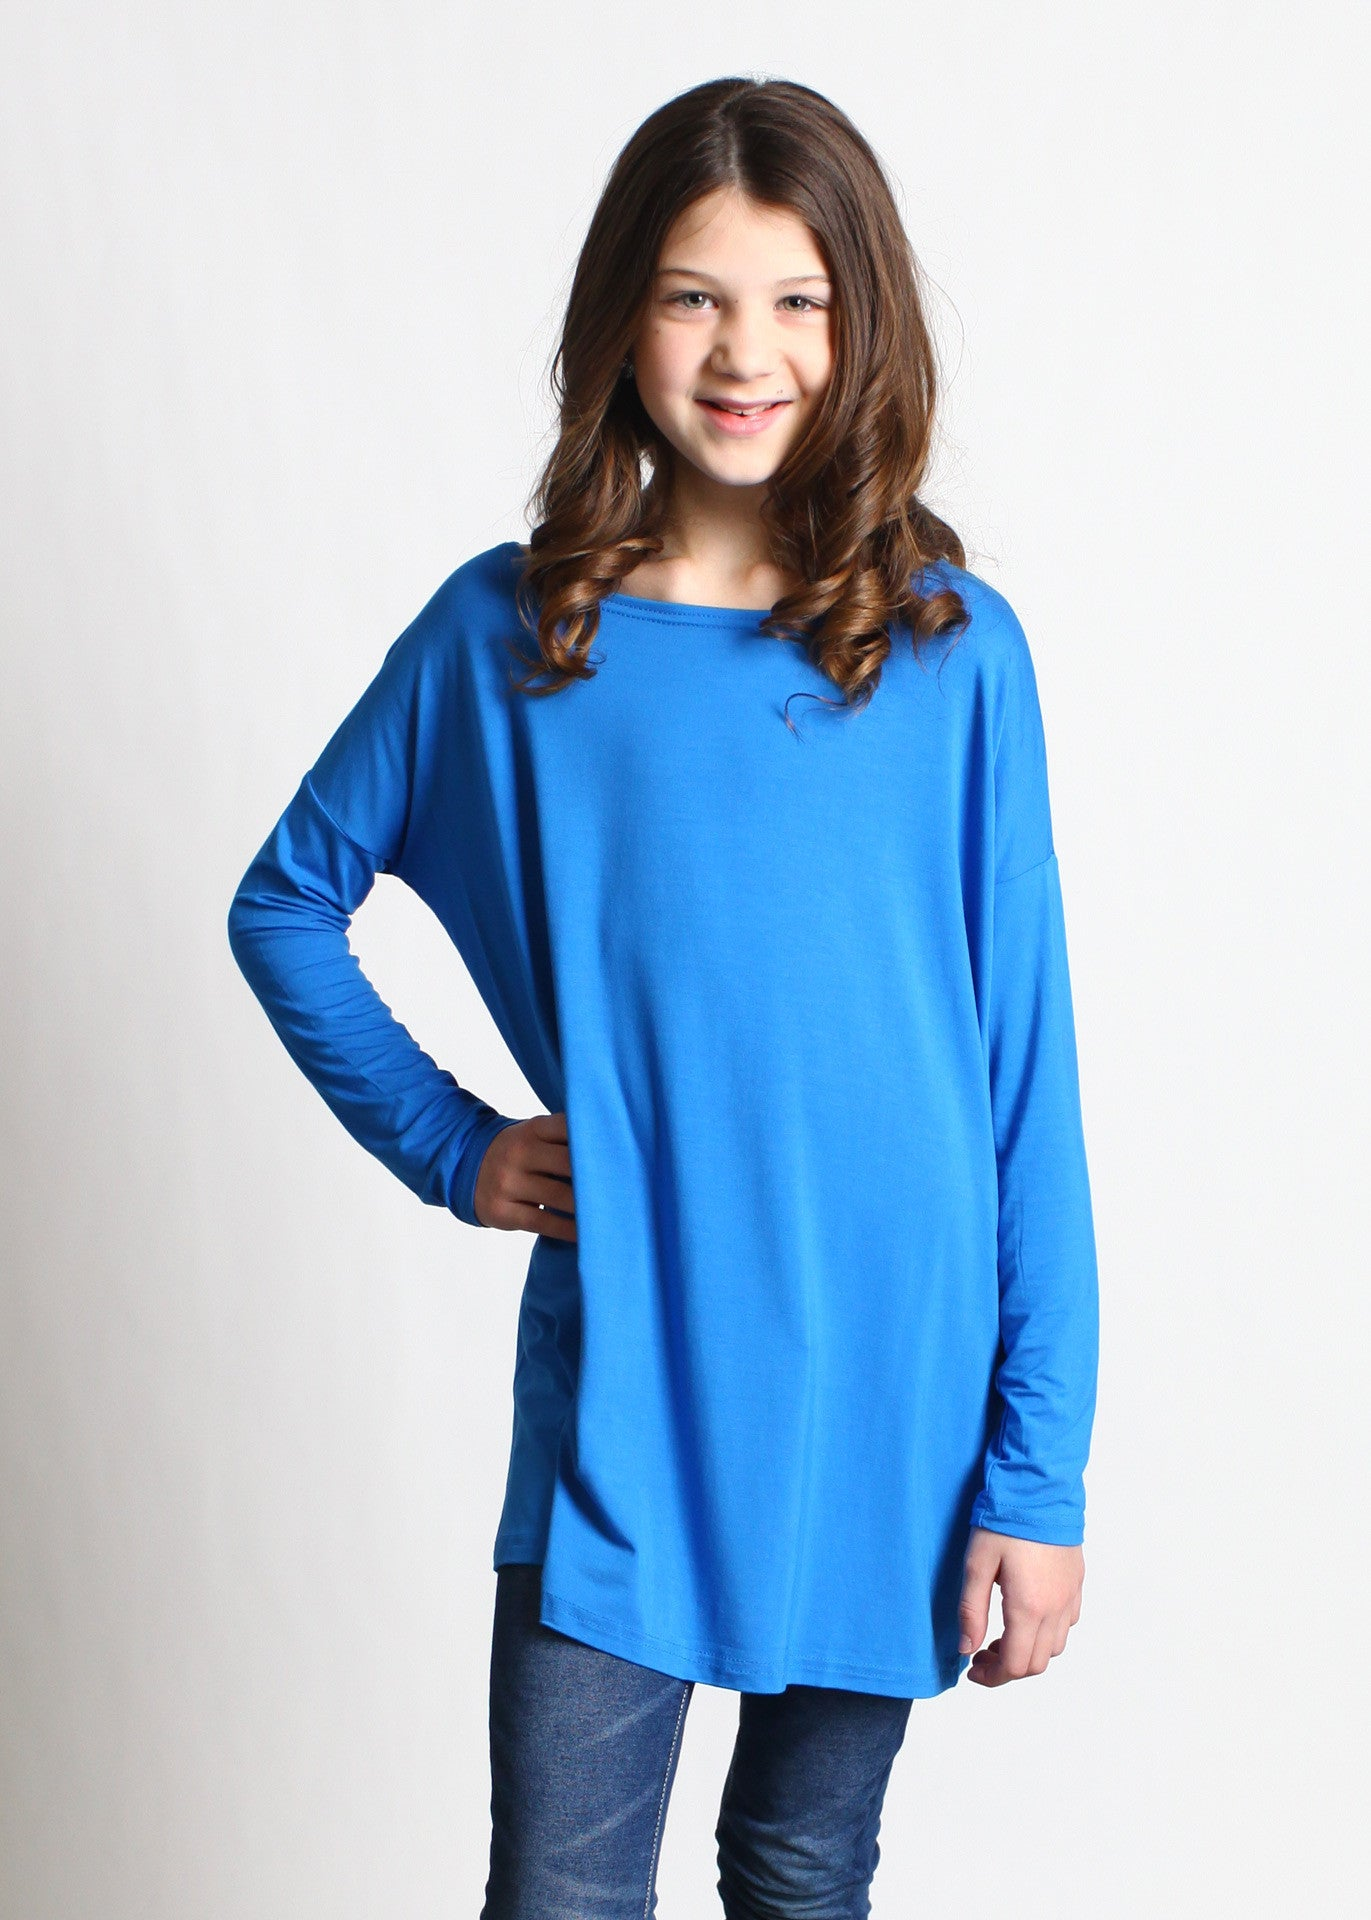 Original Kids Long Sleeve Top - Piko Clearance Center - 5